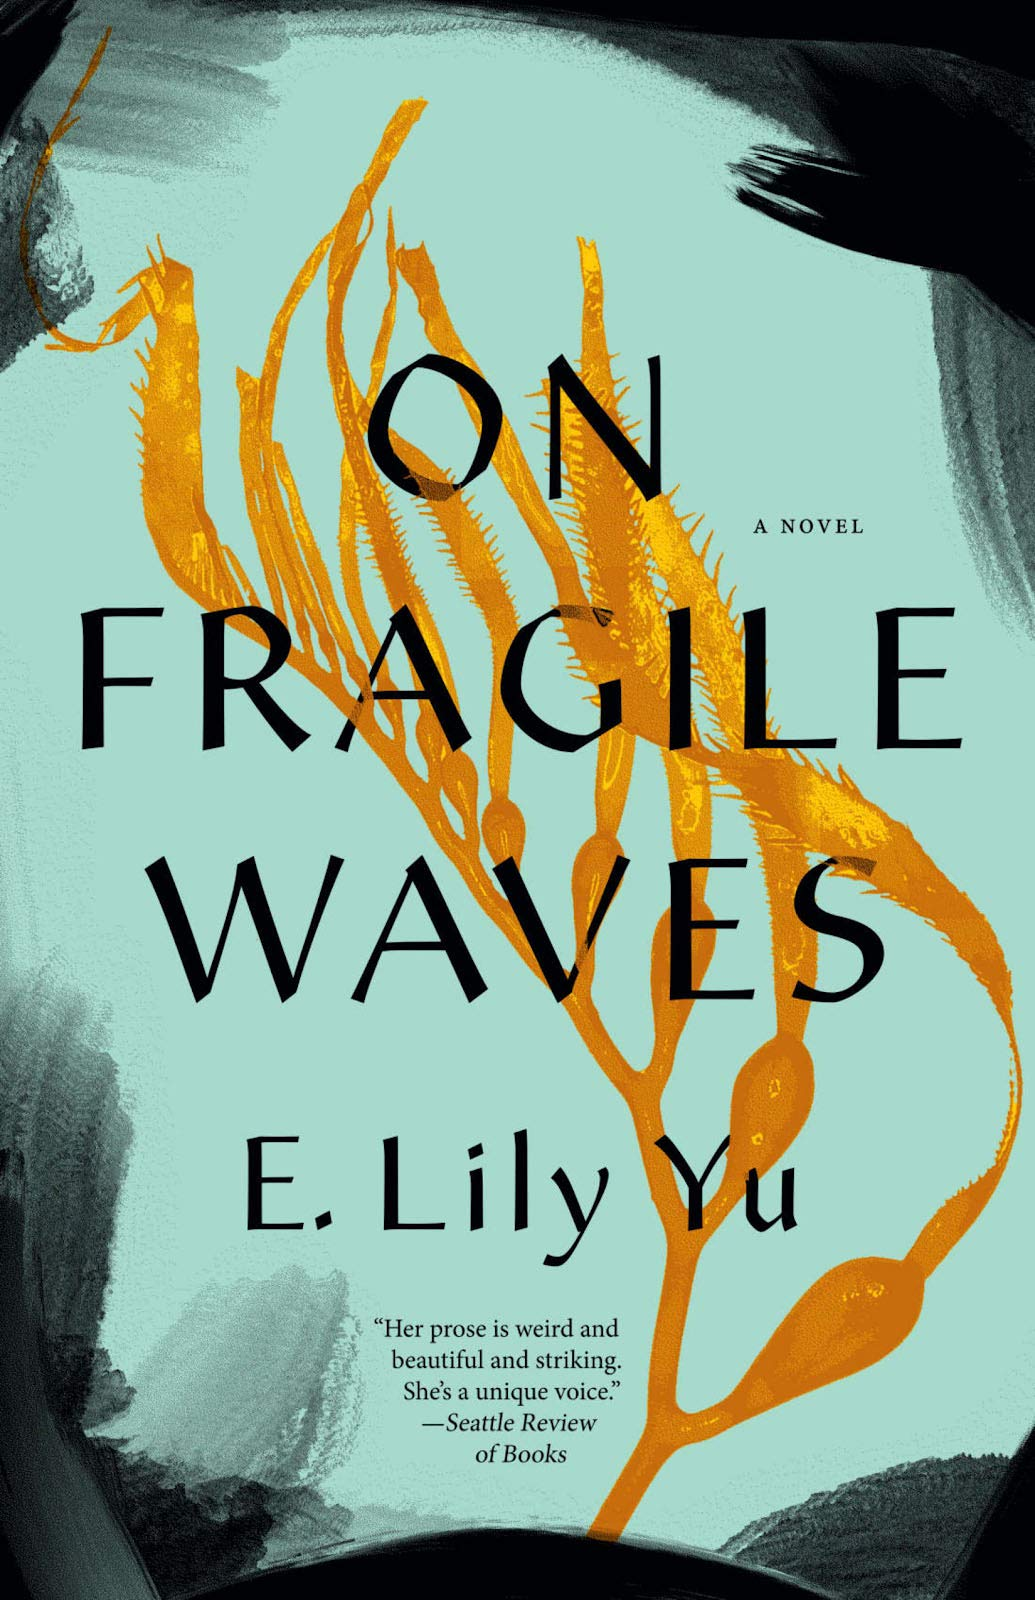 On Fragile Waves: Yu, E. Lily: 9781645660095: Amazon.com: Books